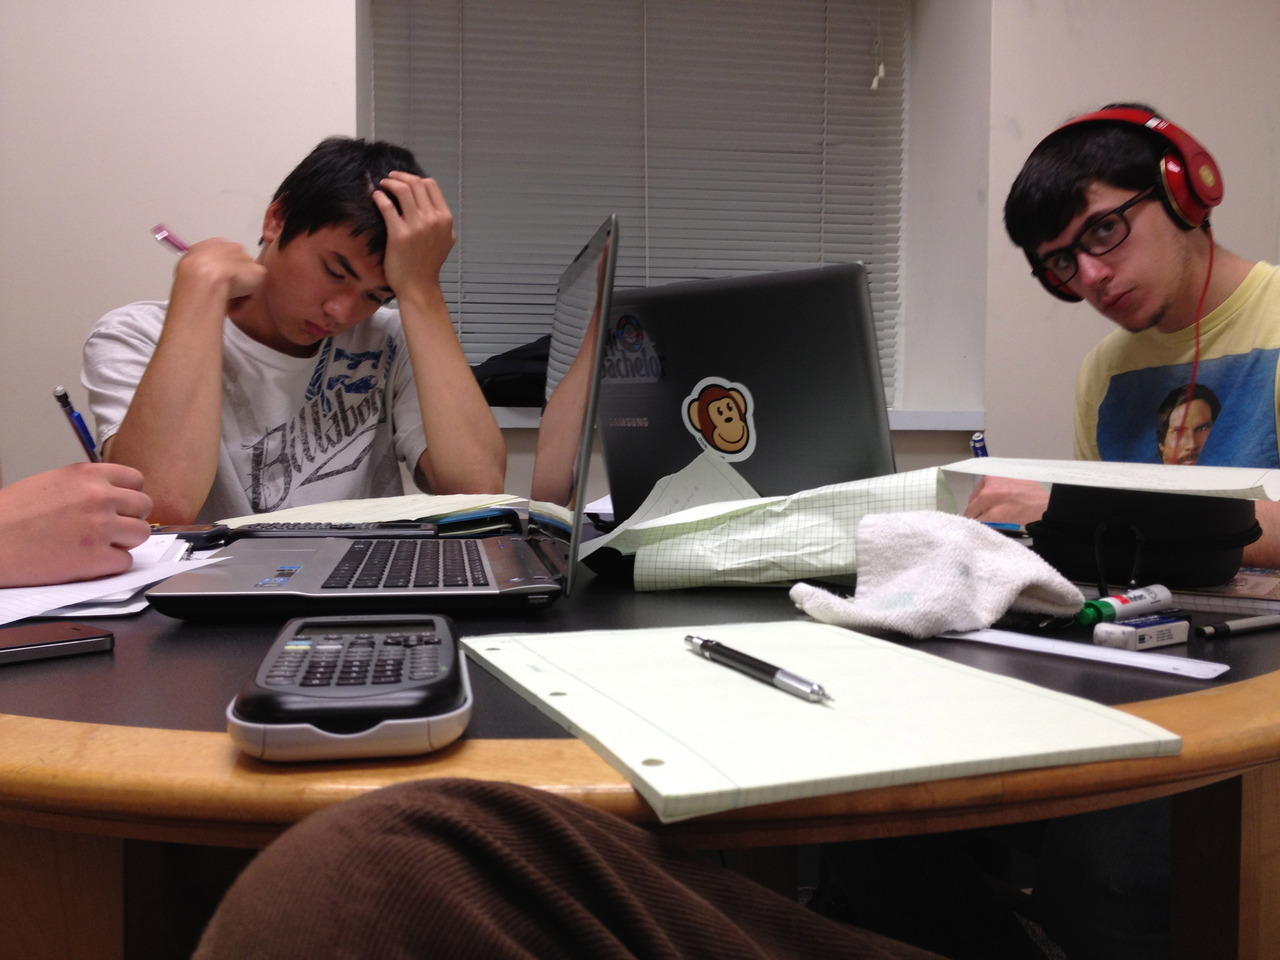 Studying Students.   A biophysicist (left), mechanical engineer (right), and biological engineer (photographer) sit and study for their exam the following day.